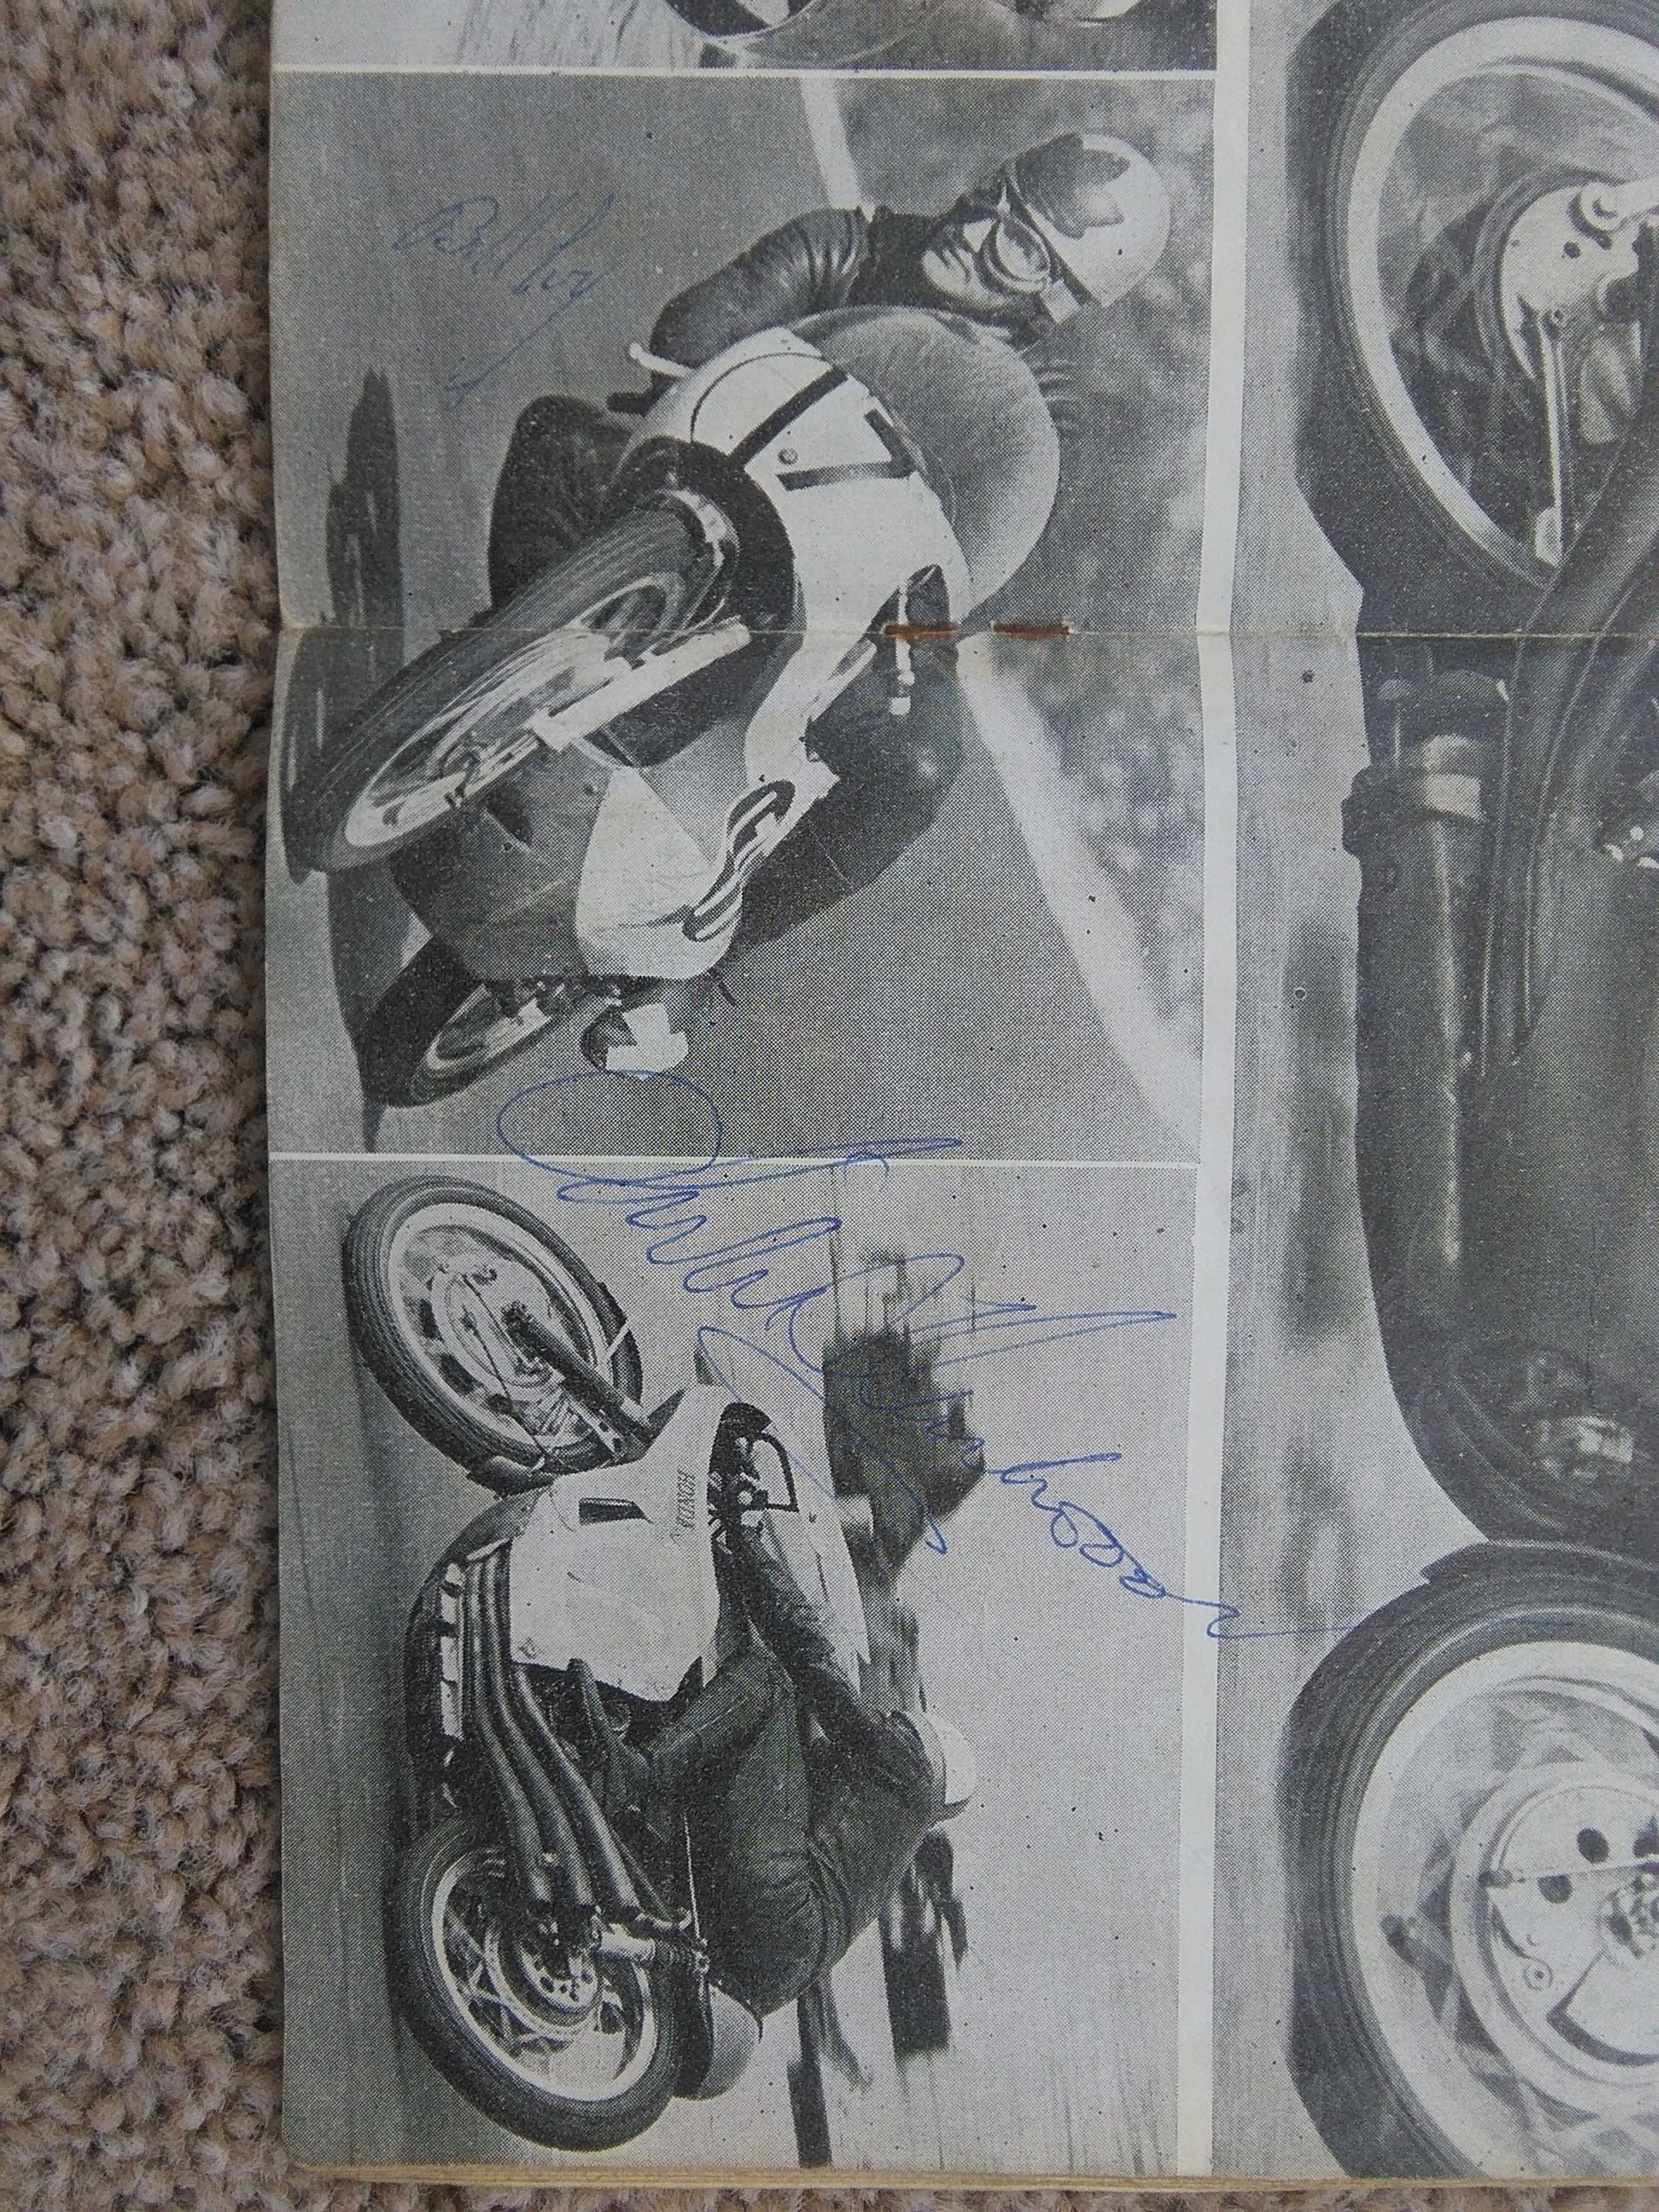 Mike Hailwood/Bill Ivy Signed